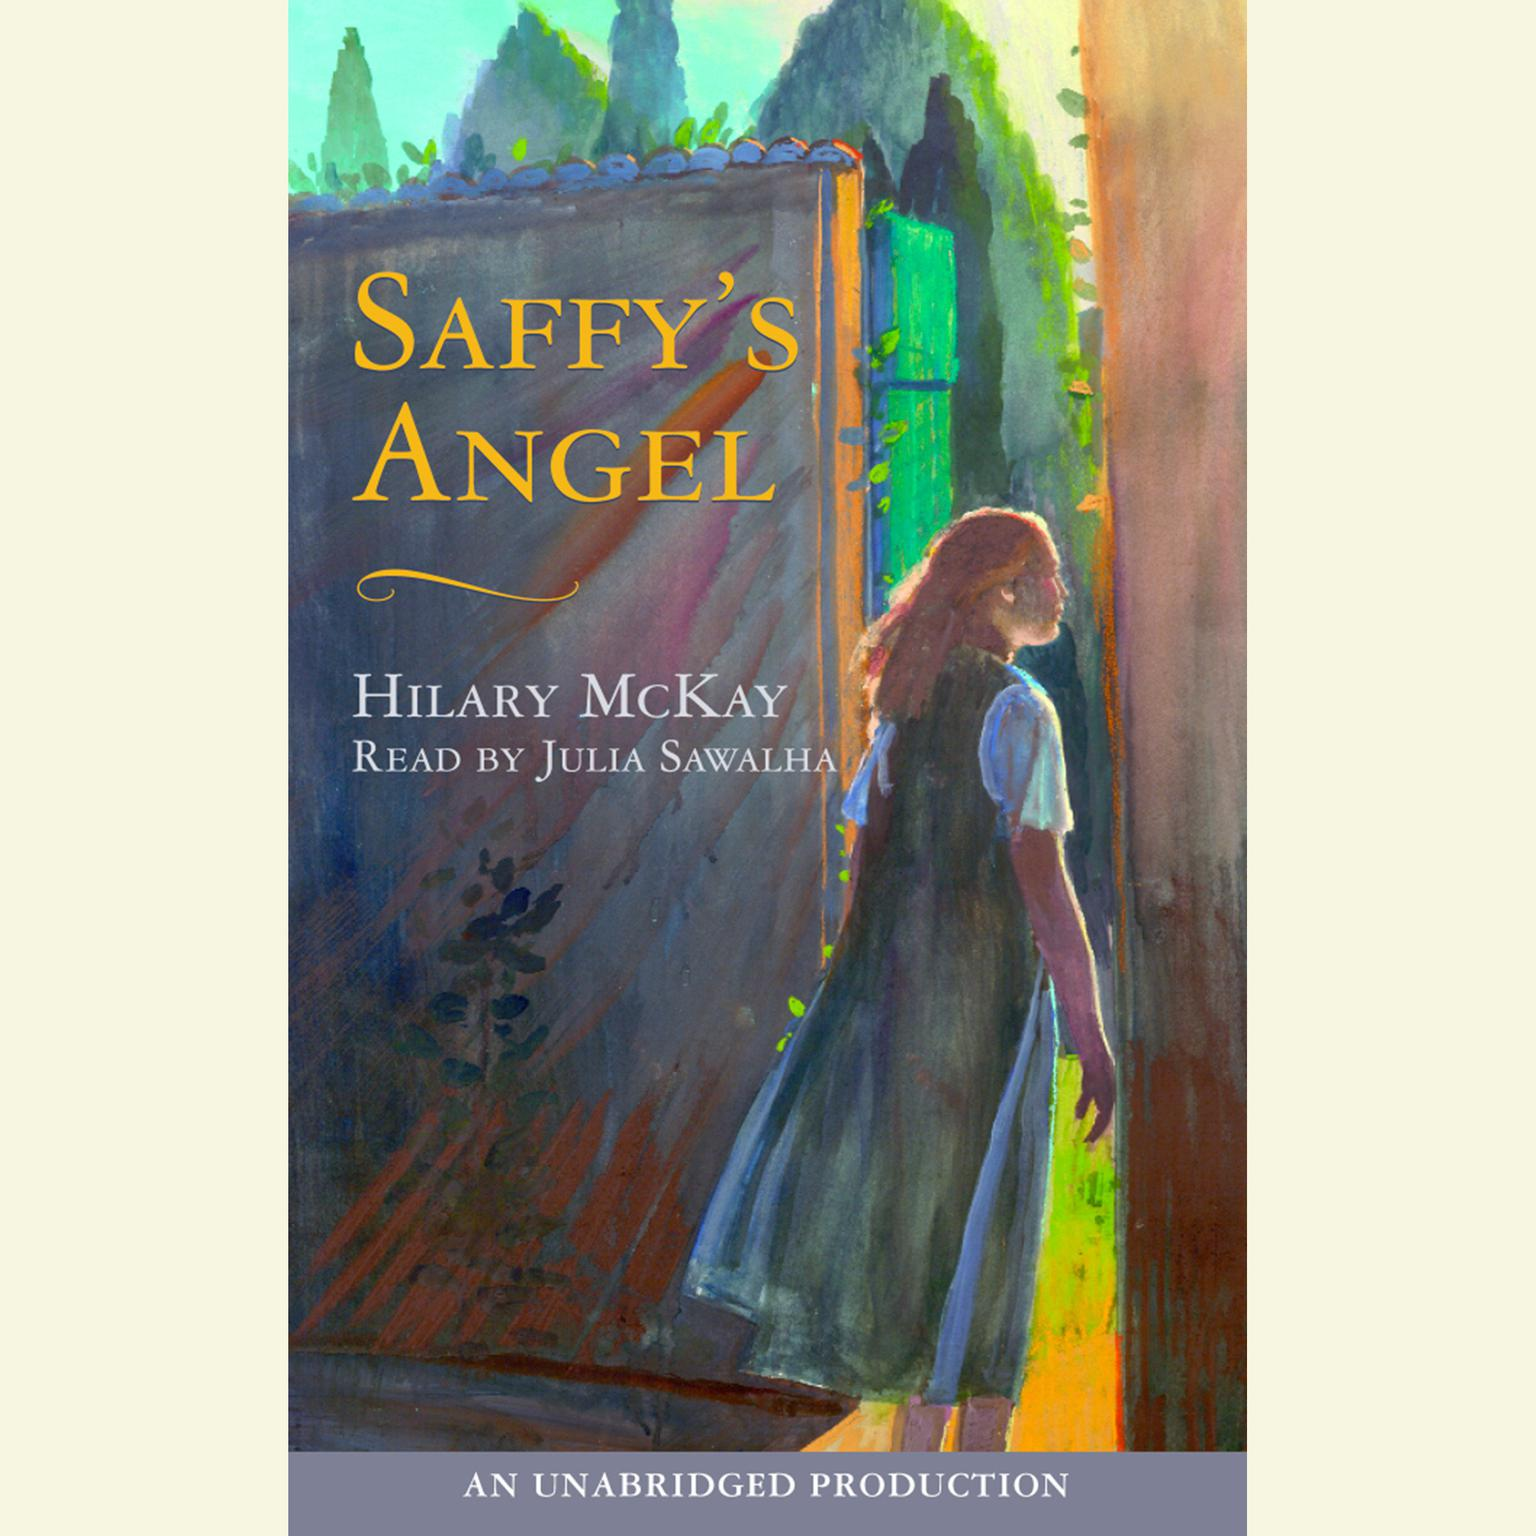 Saffy's Angel - Audiobook | Listen Instantly!